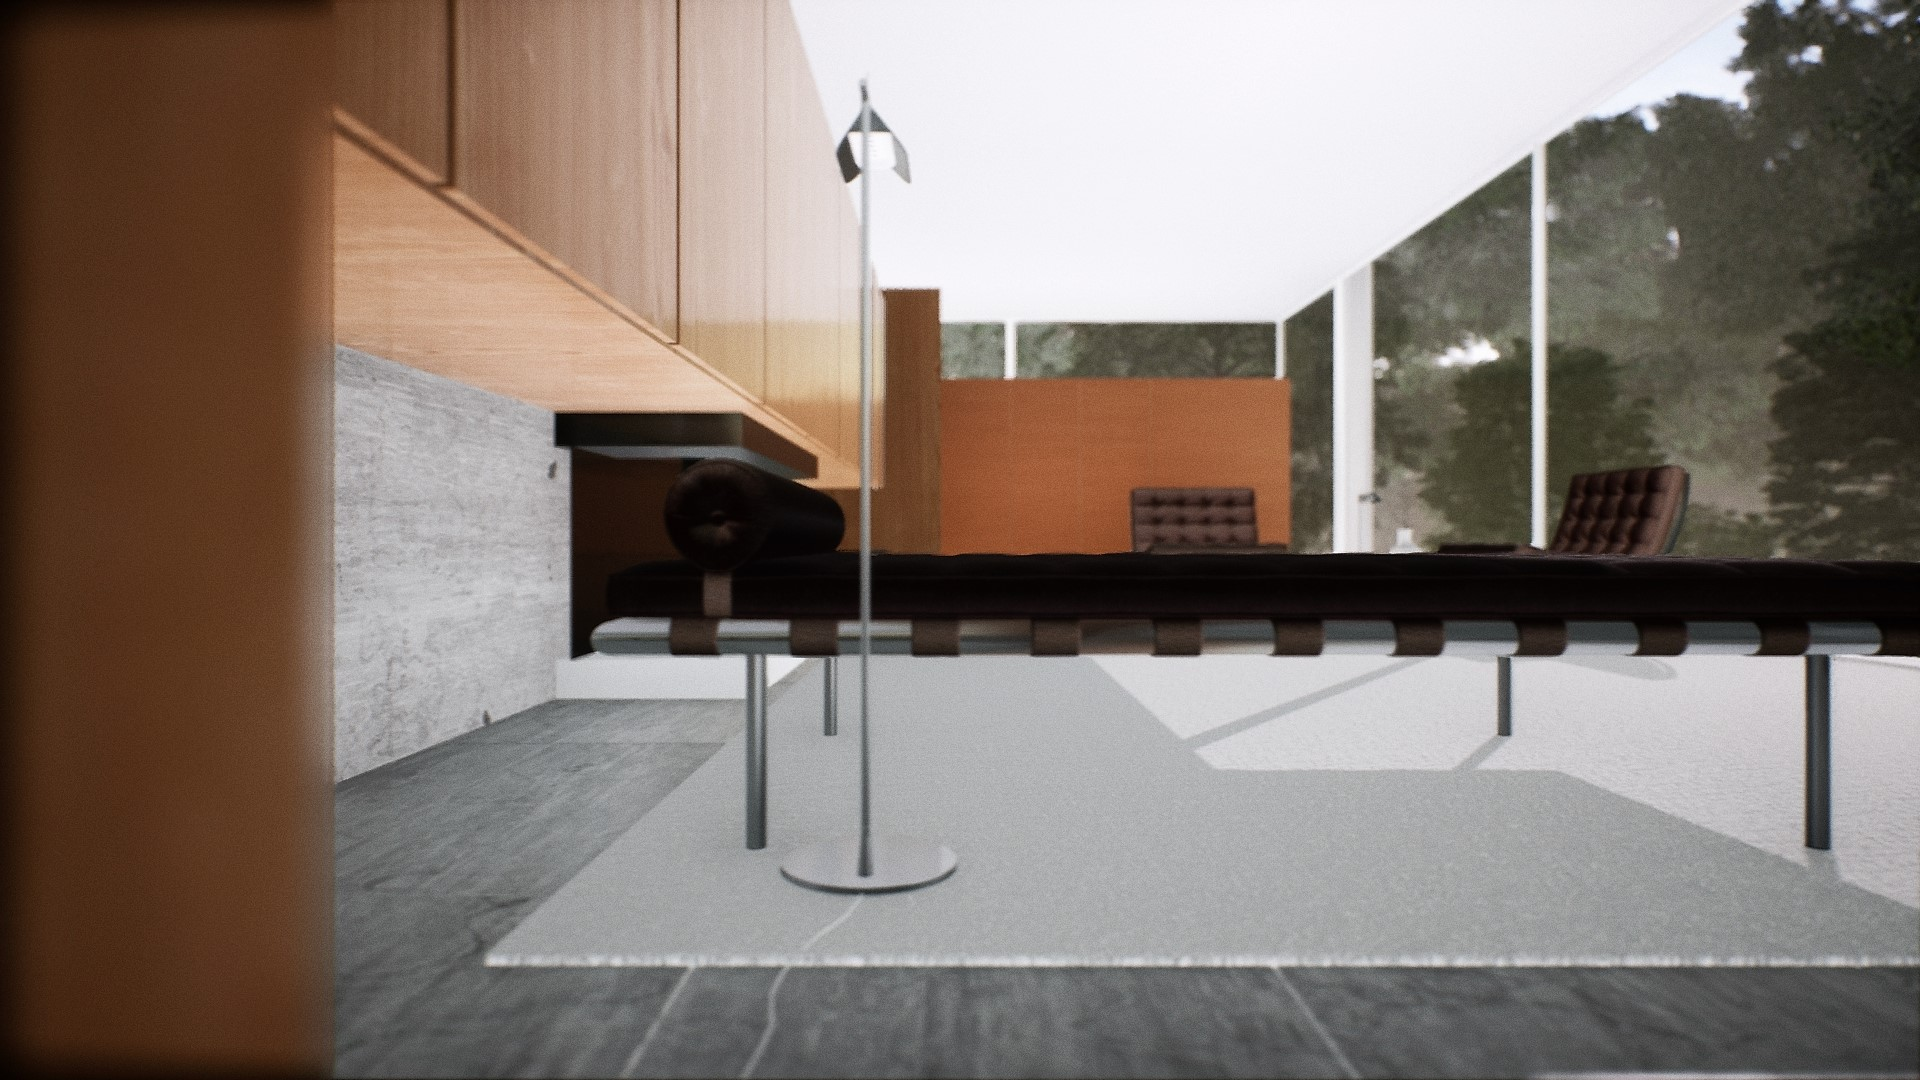 MIES farnsworth house UE4 avocad